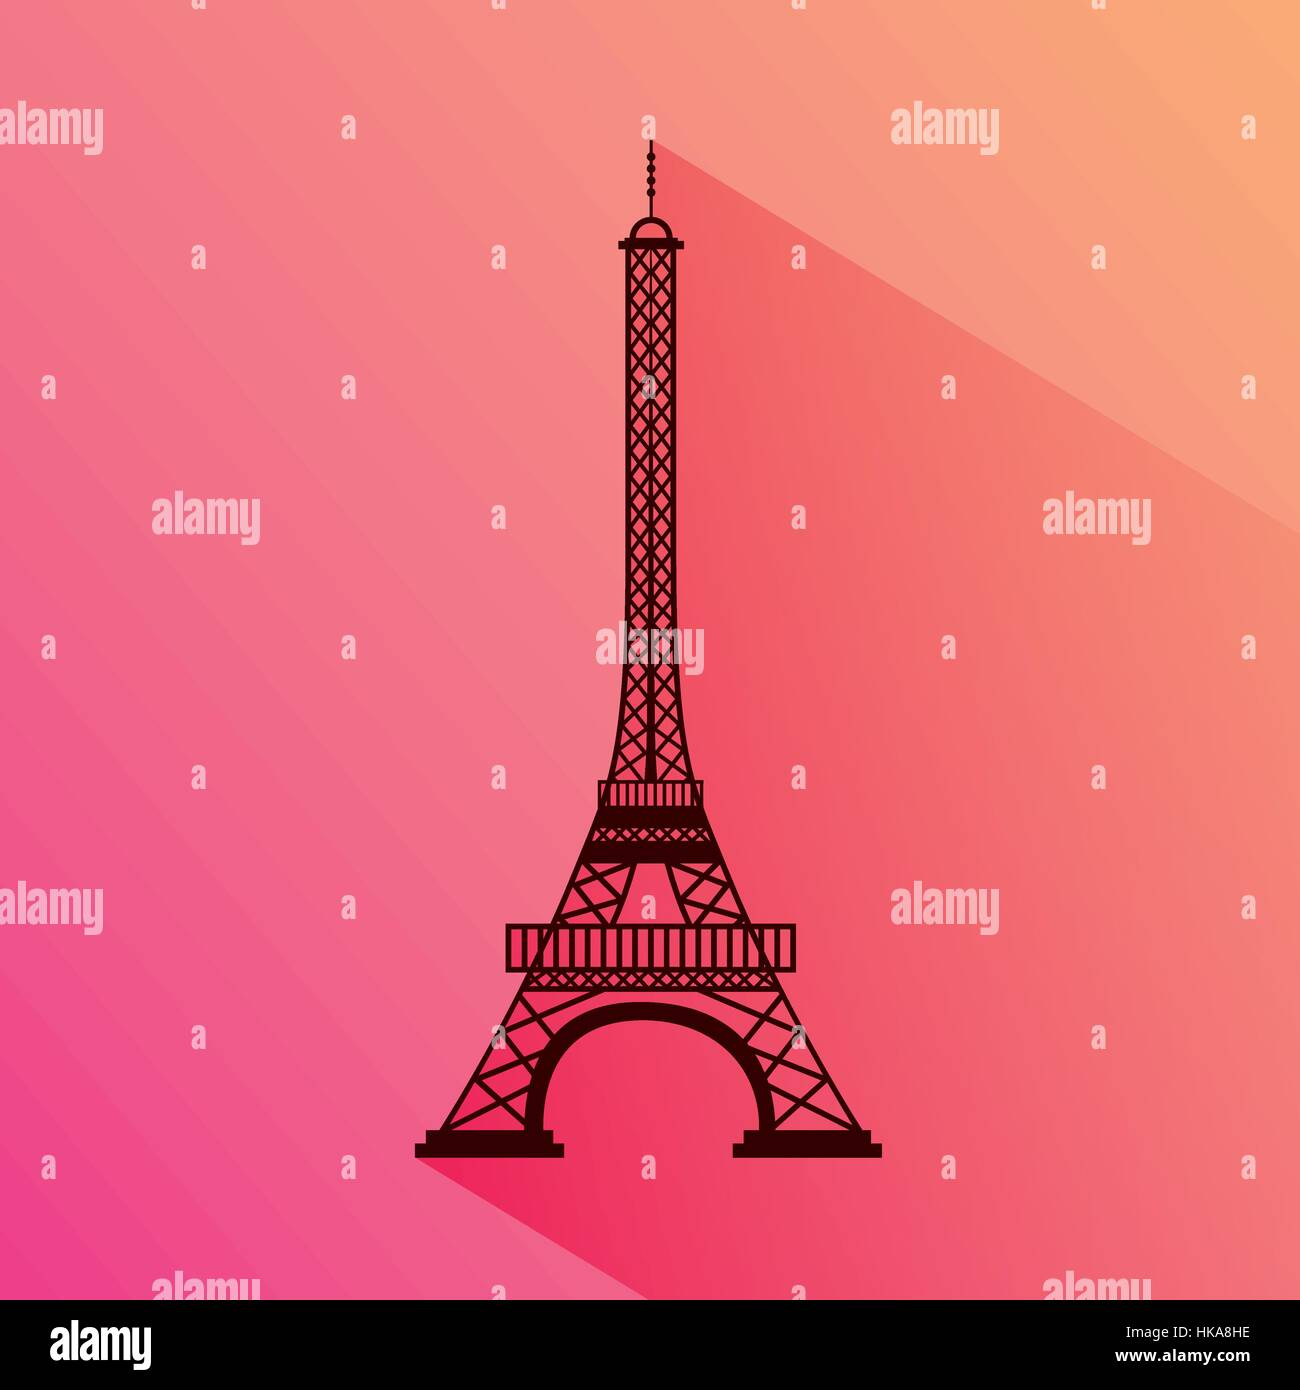 eiffel tower icon over colorful background. travel and tourism design. vector illustration - Stock Vector